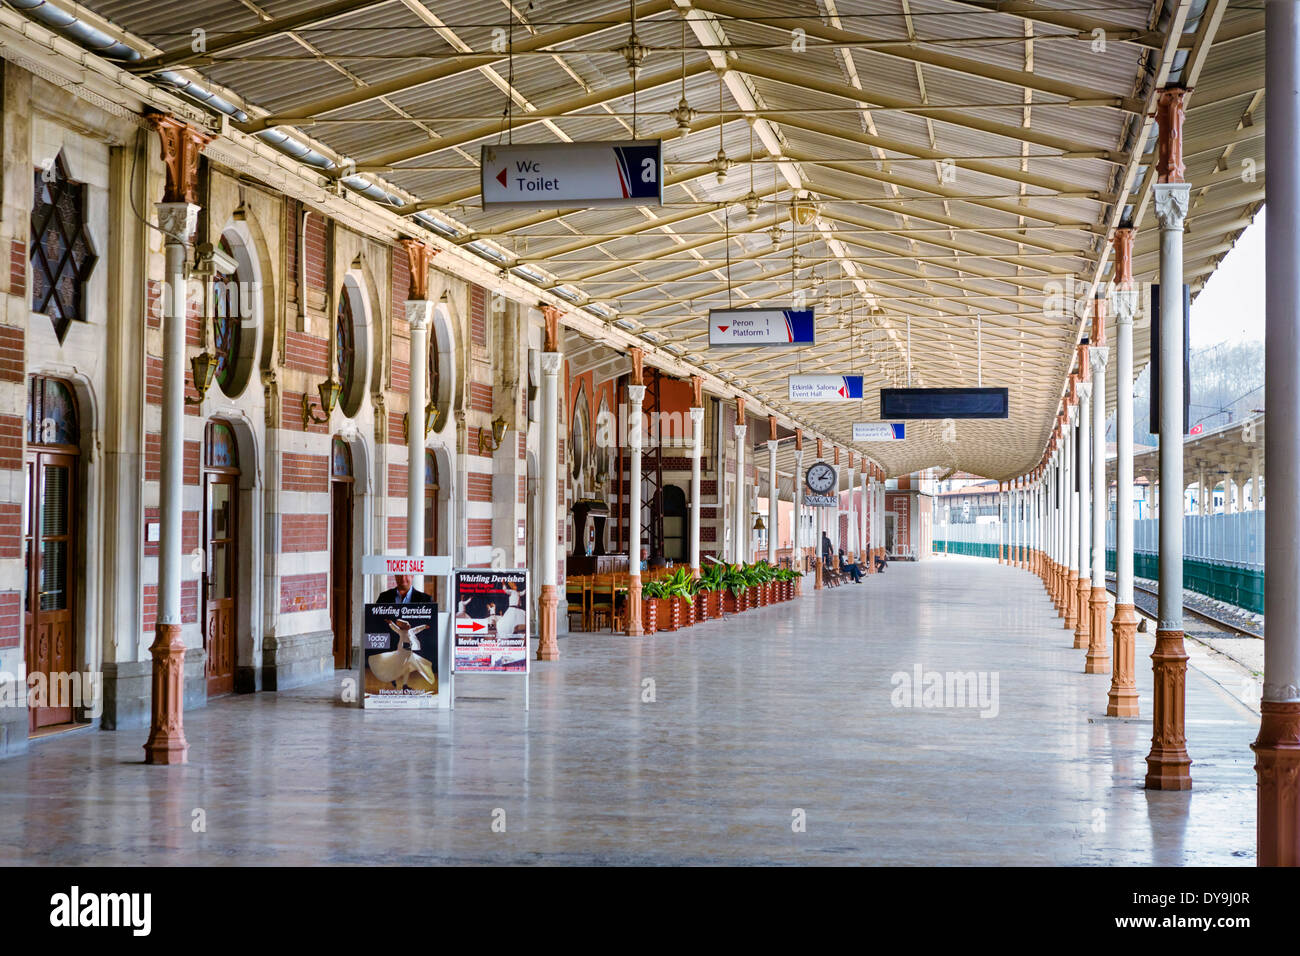 Platform in the old part of Sirkeci Station, former eastern terminus of the Orient Express, Eminonu district, Istanbul,Turkey - Stock Image